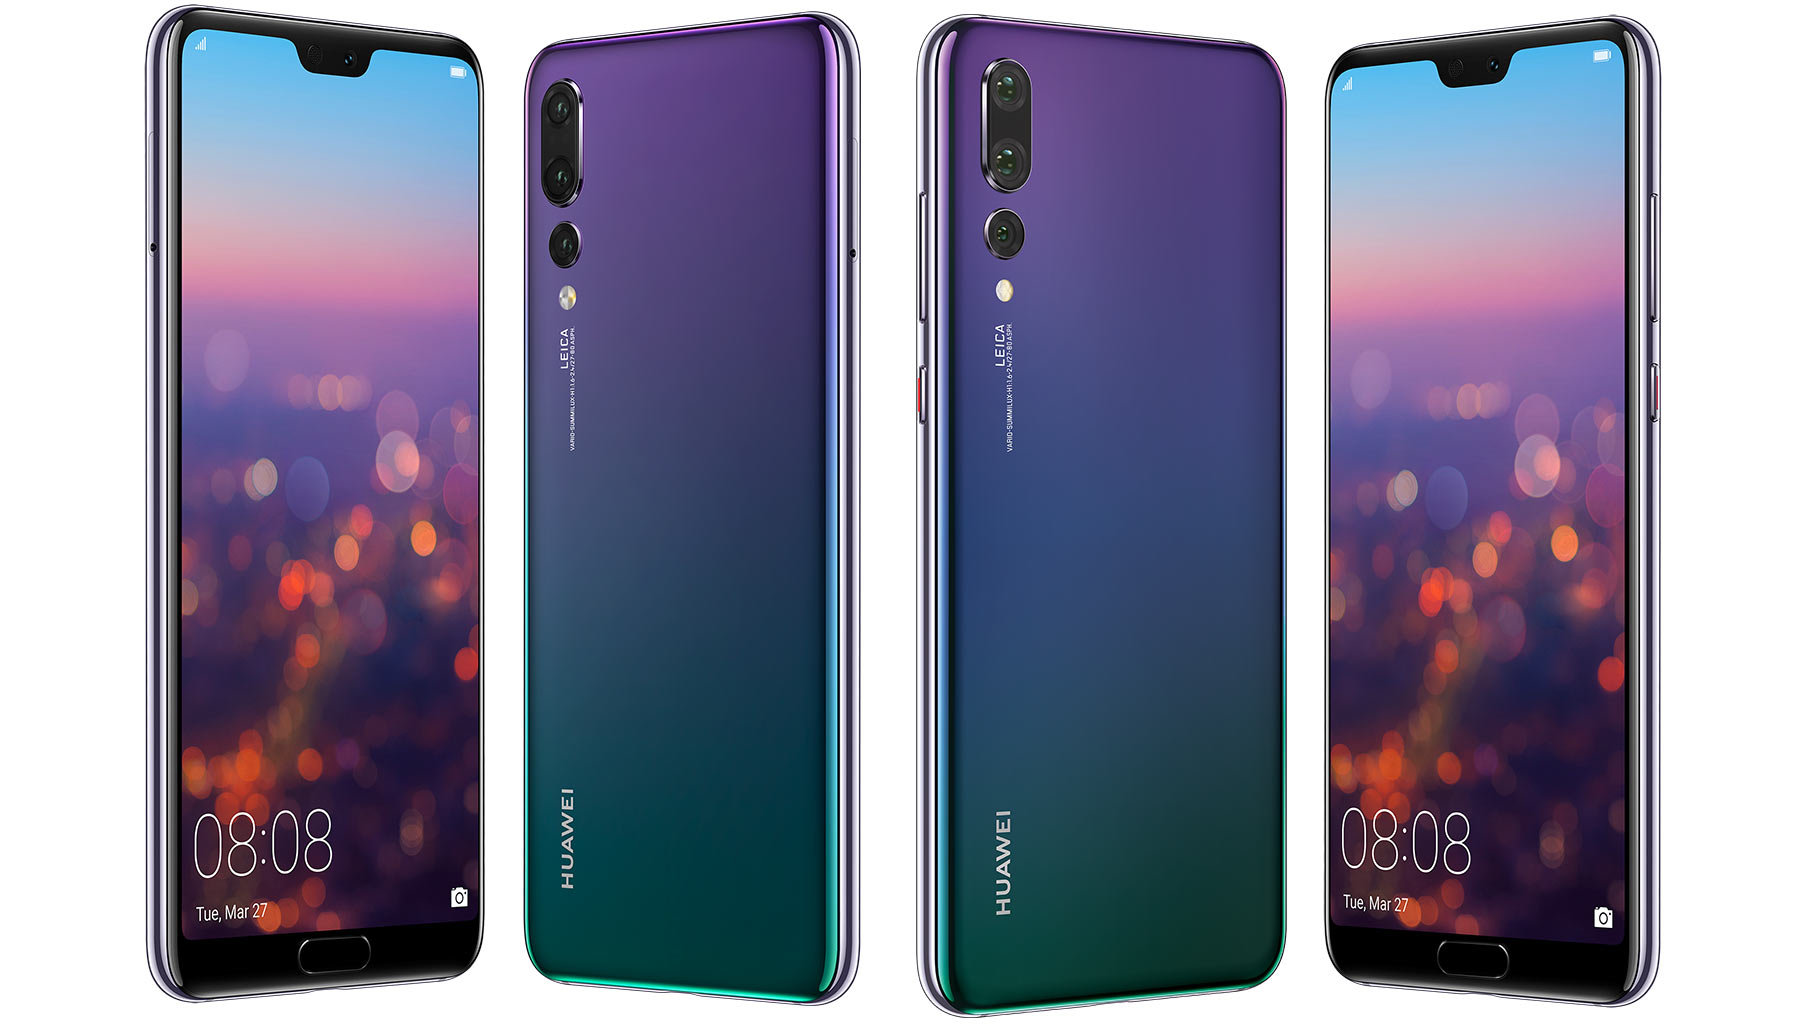 Huawei Smartphone Huawei P20 Pro Review It Has The World S Best Smartphone Camera